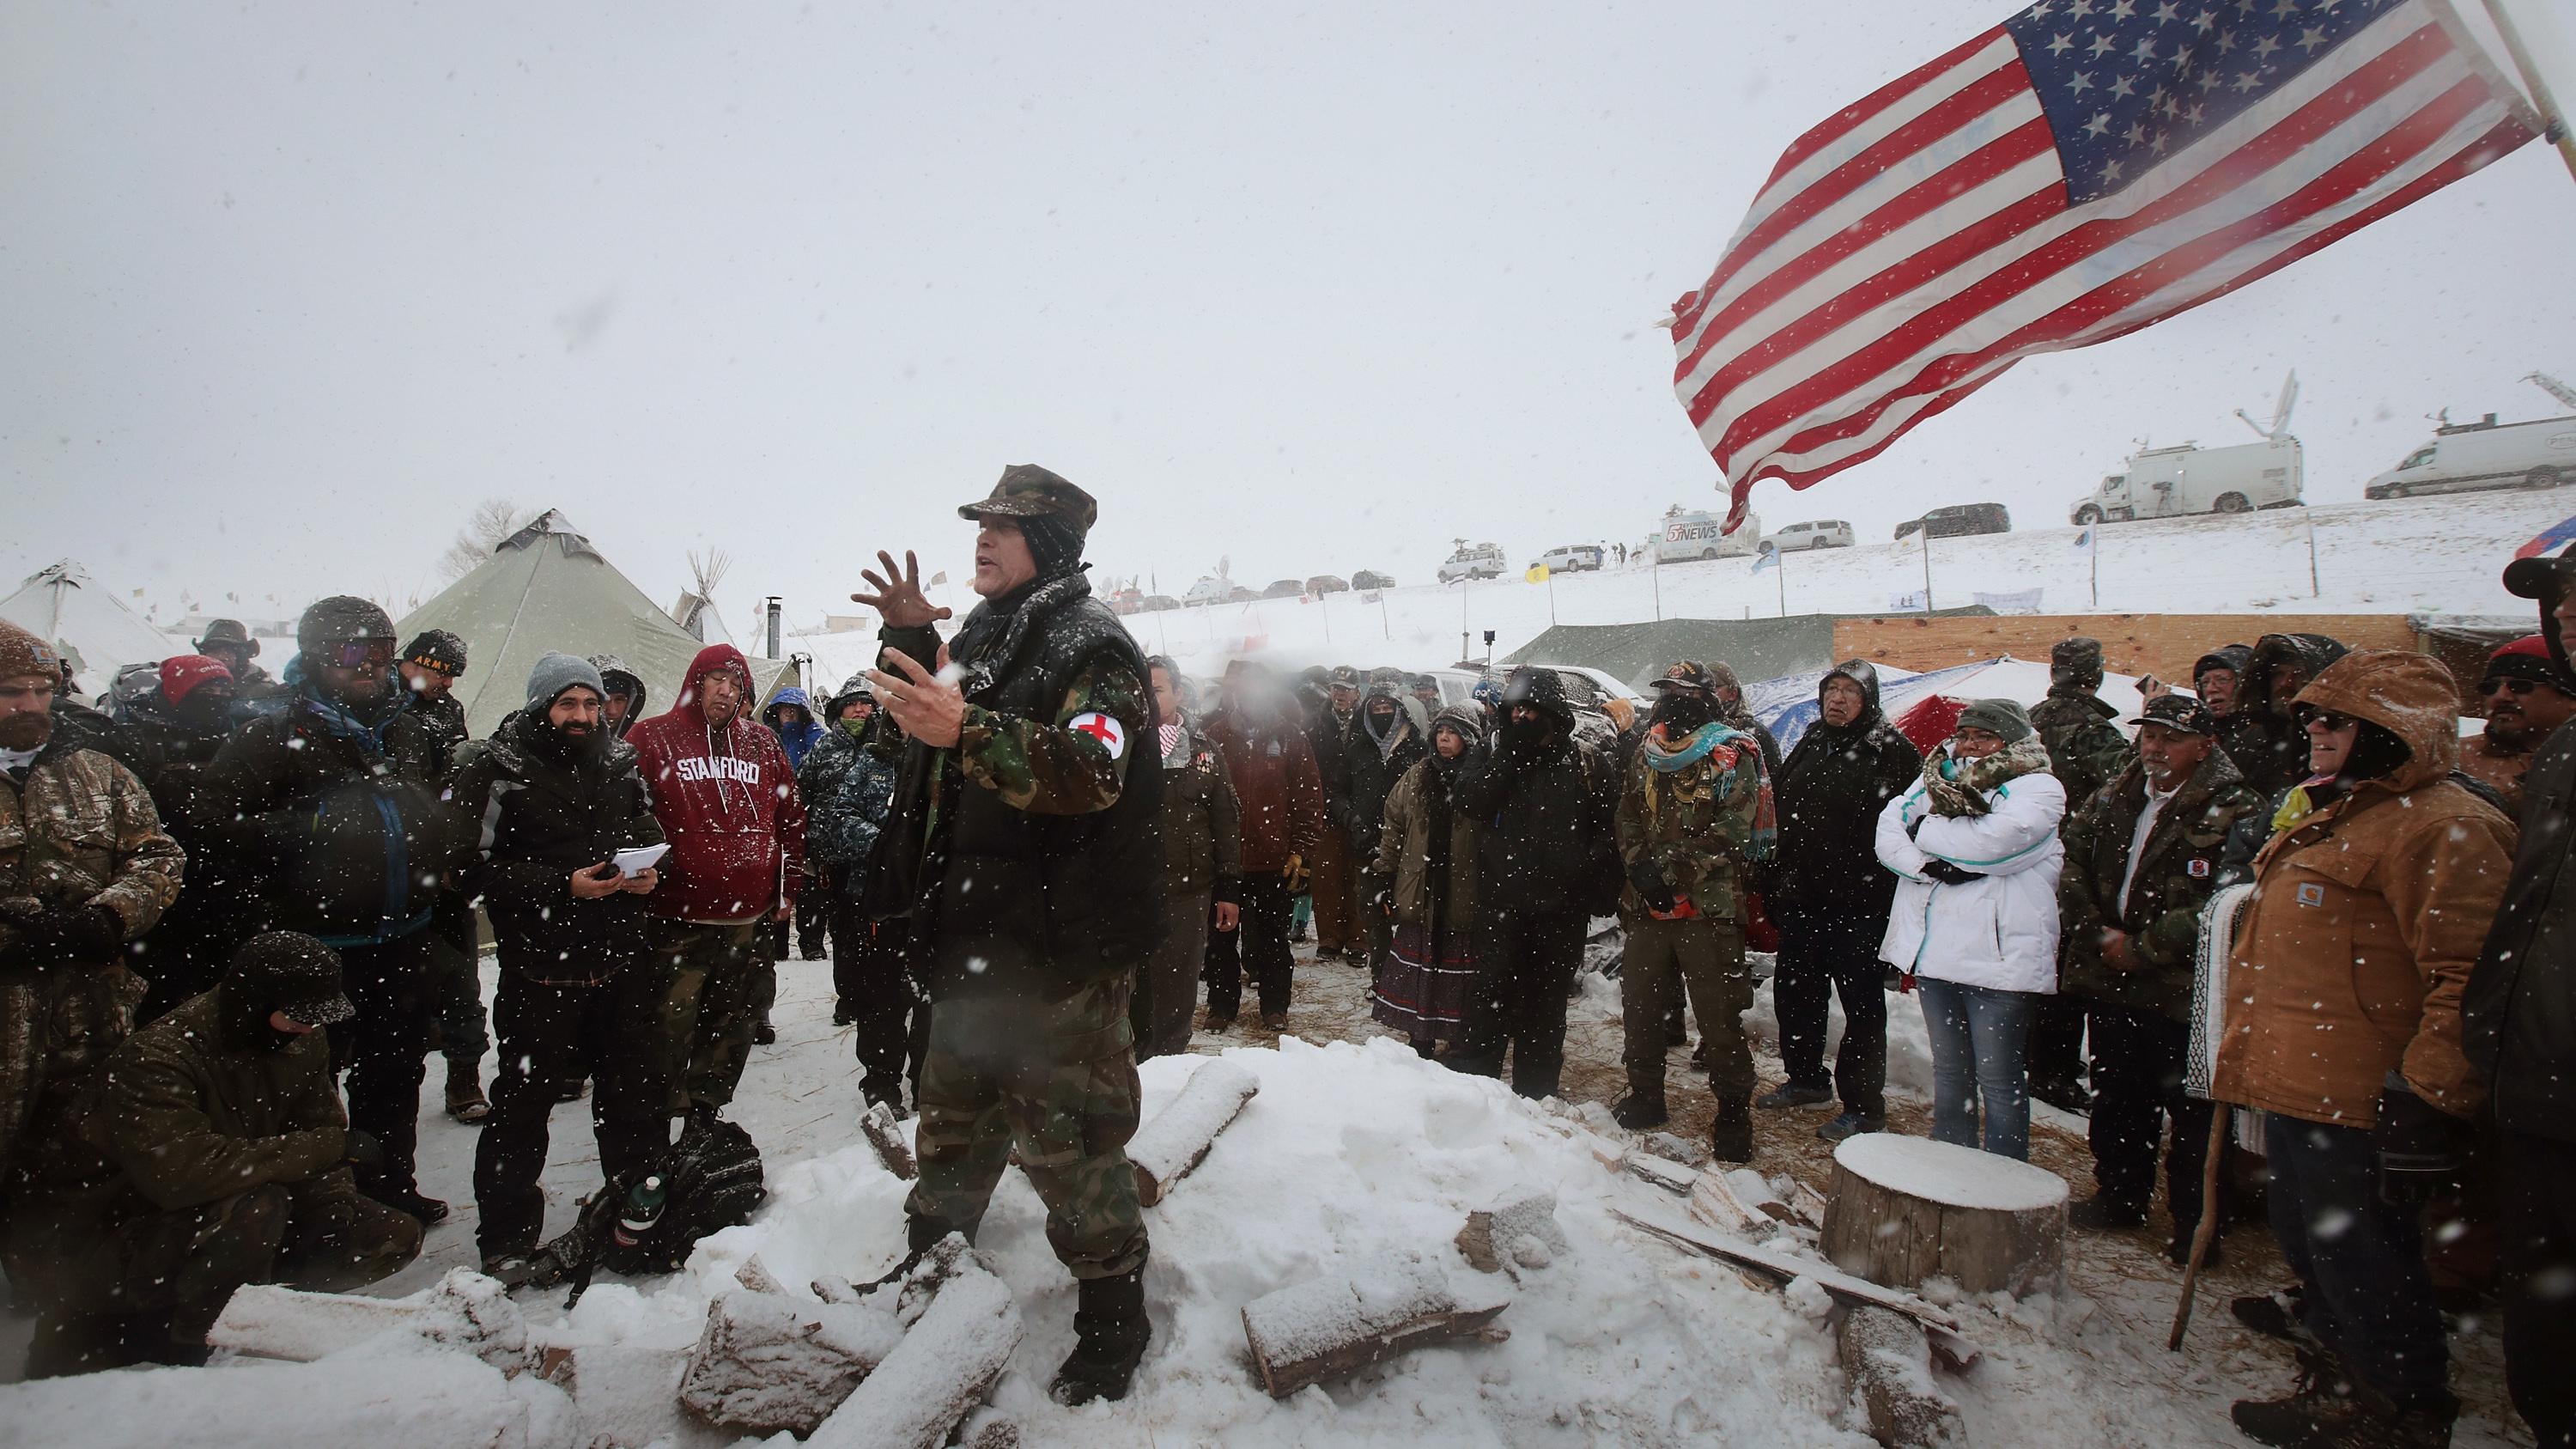 Military veterans are briefed on their role at Oceti Sakowin Camp and on cold-weather safety on Monday. Over the weekend, a group of veterans joined activists who have been trying to halt the construction of the Dakota Access Pipeline. Scott Olson/Getty Images